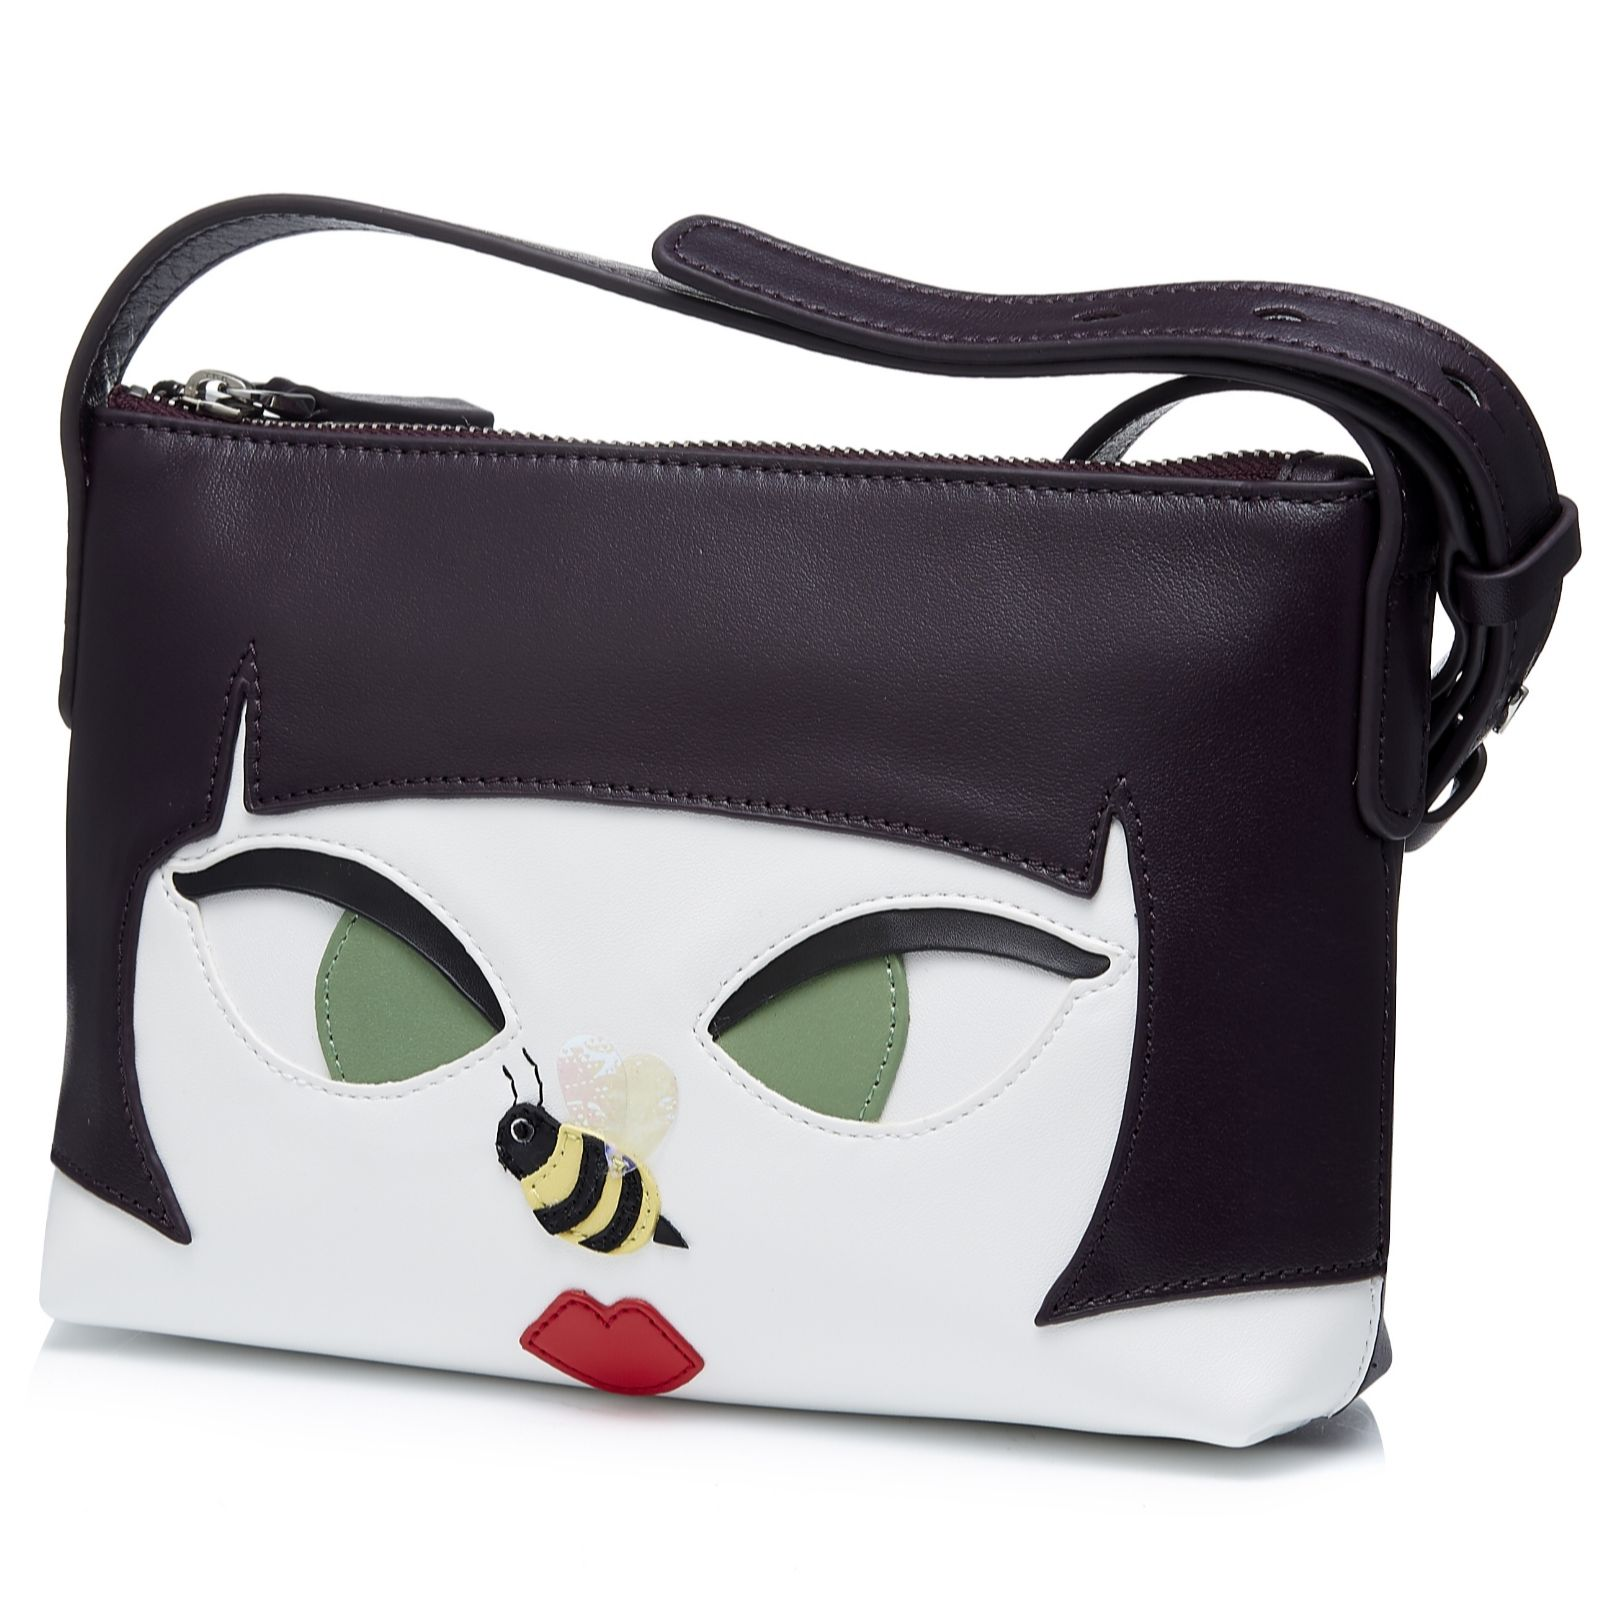 cac6af1746 Lulu Guinness Marie Bee Stung Girl Crossbody Bag - QVC UK